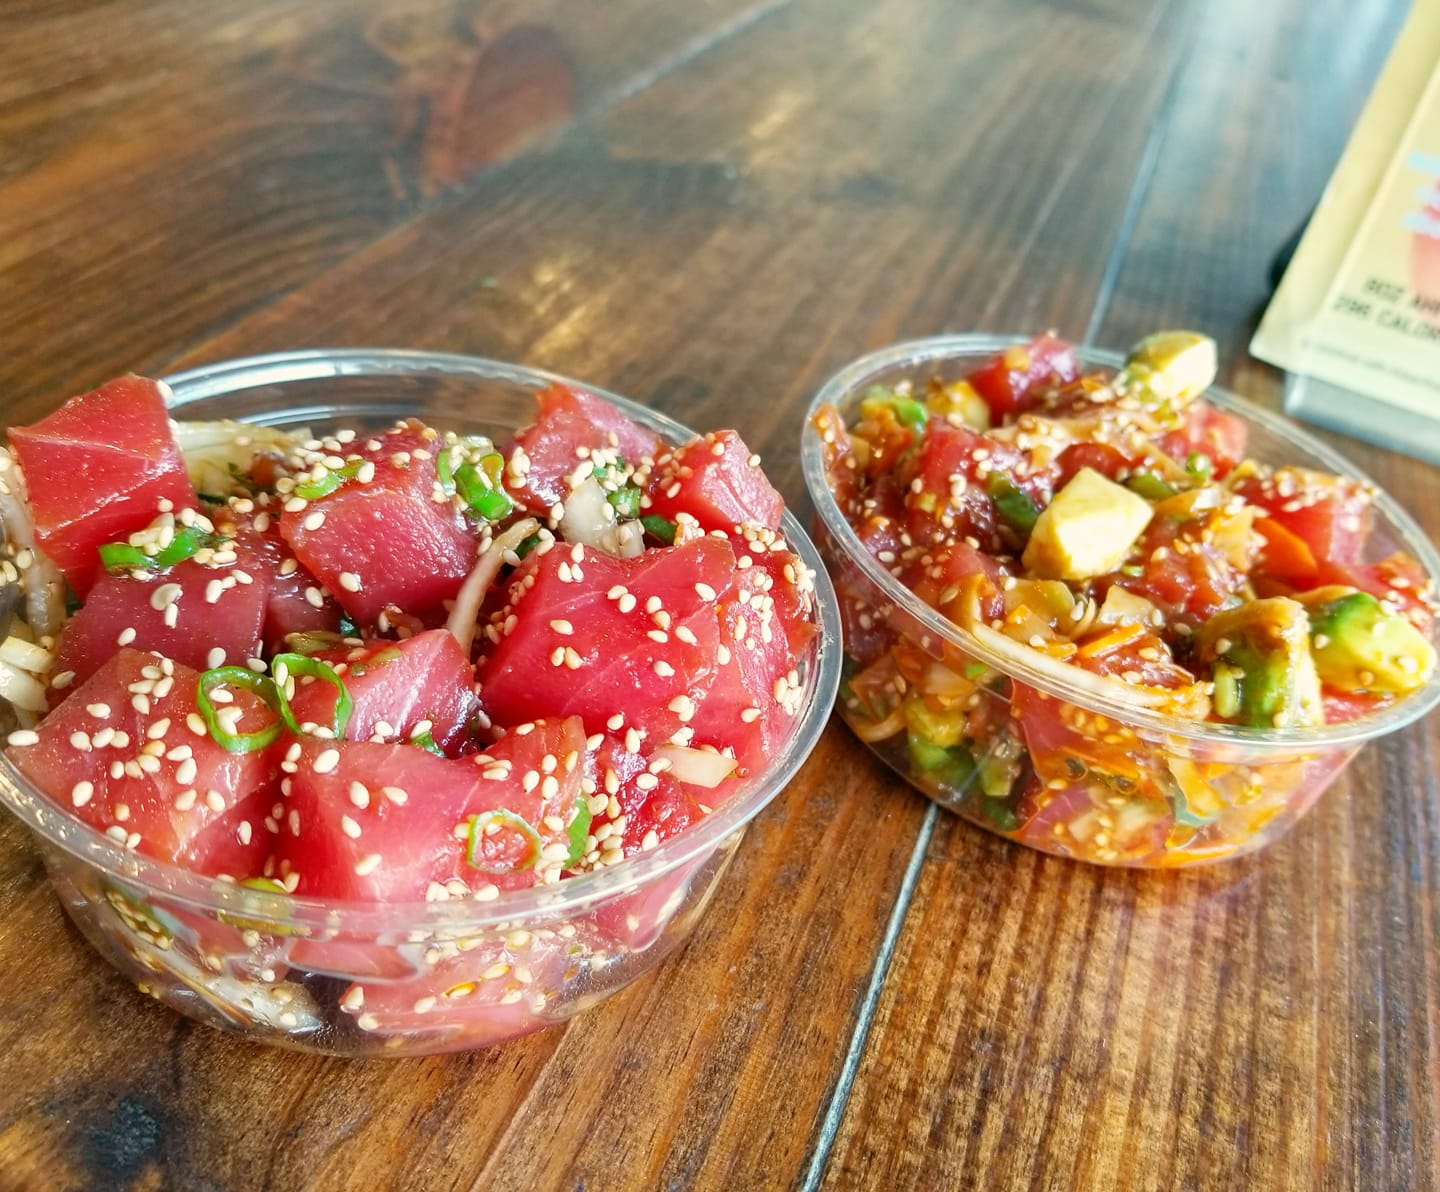 Two open containers of poke from Poke Poke